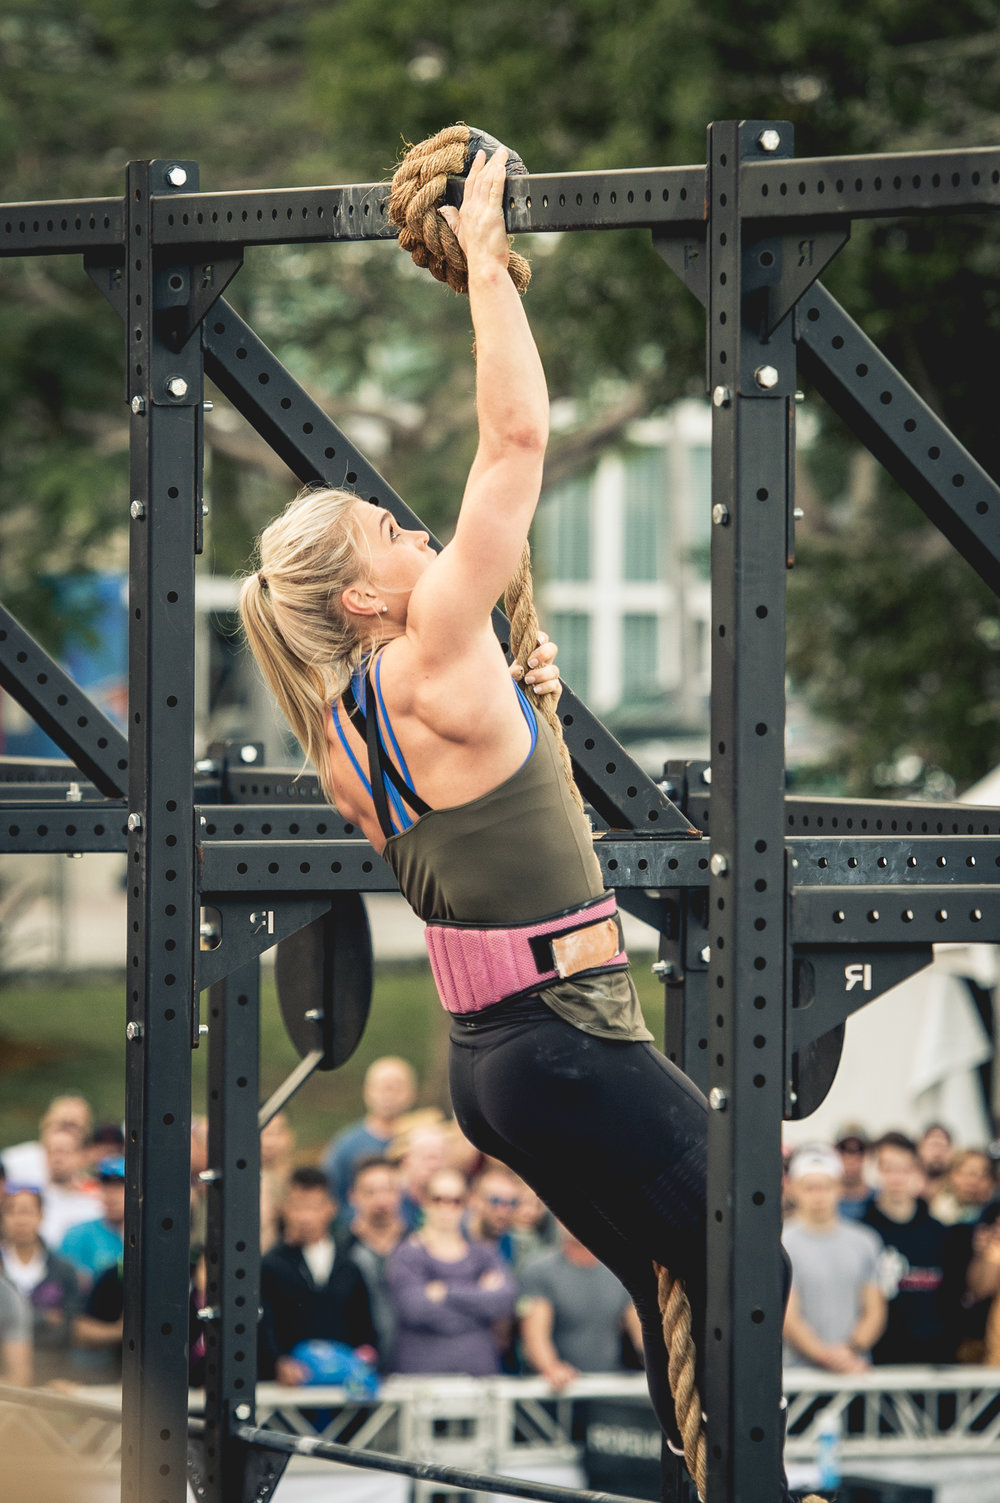 2018 Wodapalooza - Day 3, Photo Alessio Neri-001-55.jpg